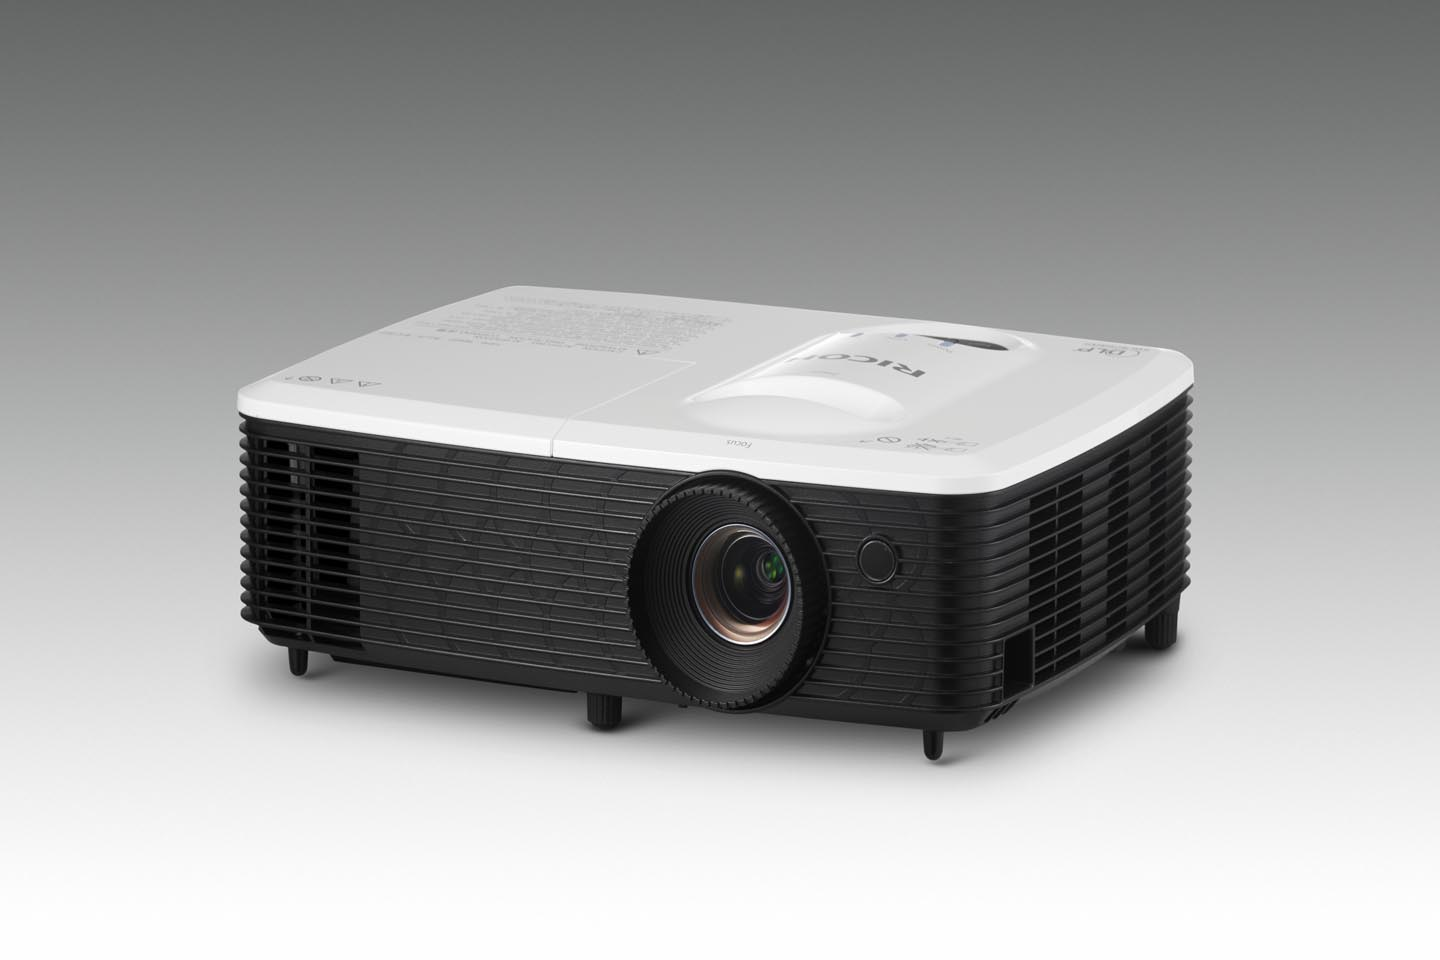 Ricoh launches new series of compact, advanced projectors